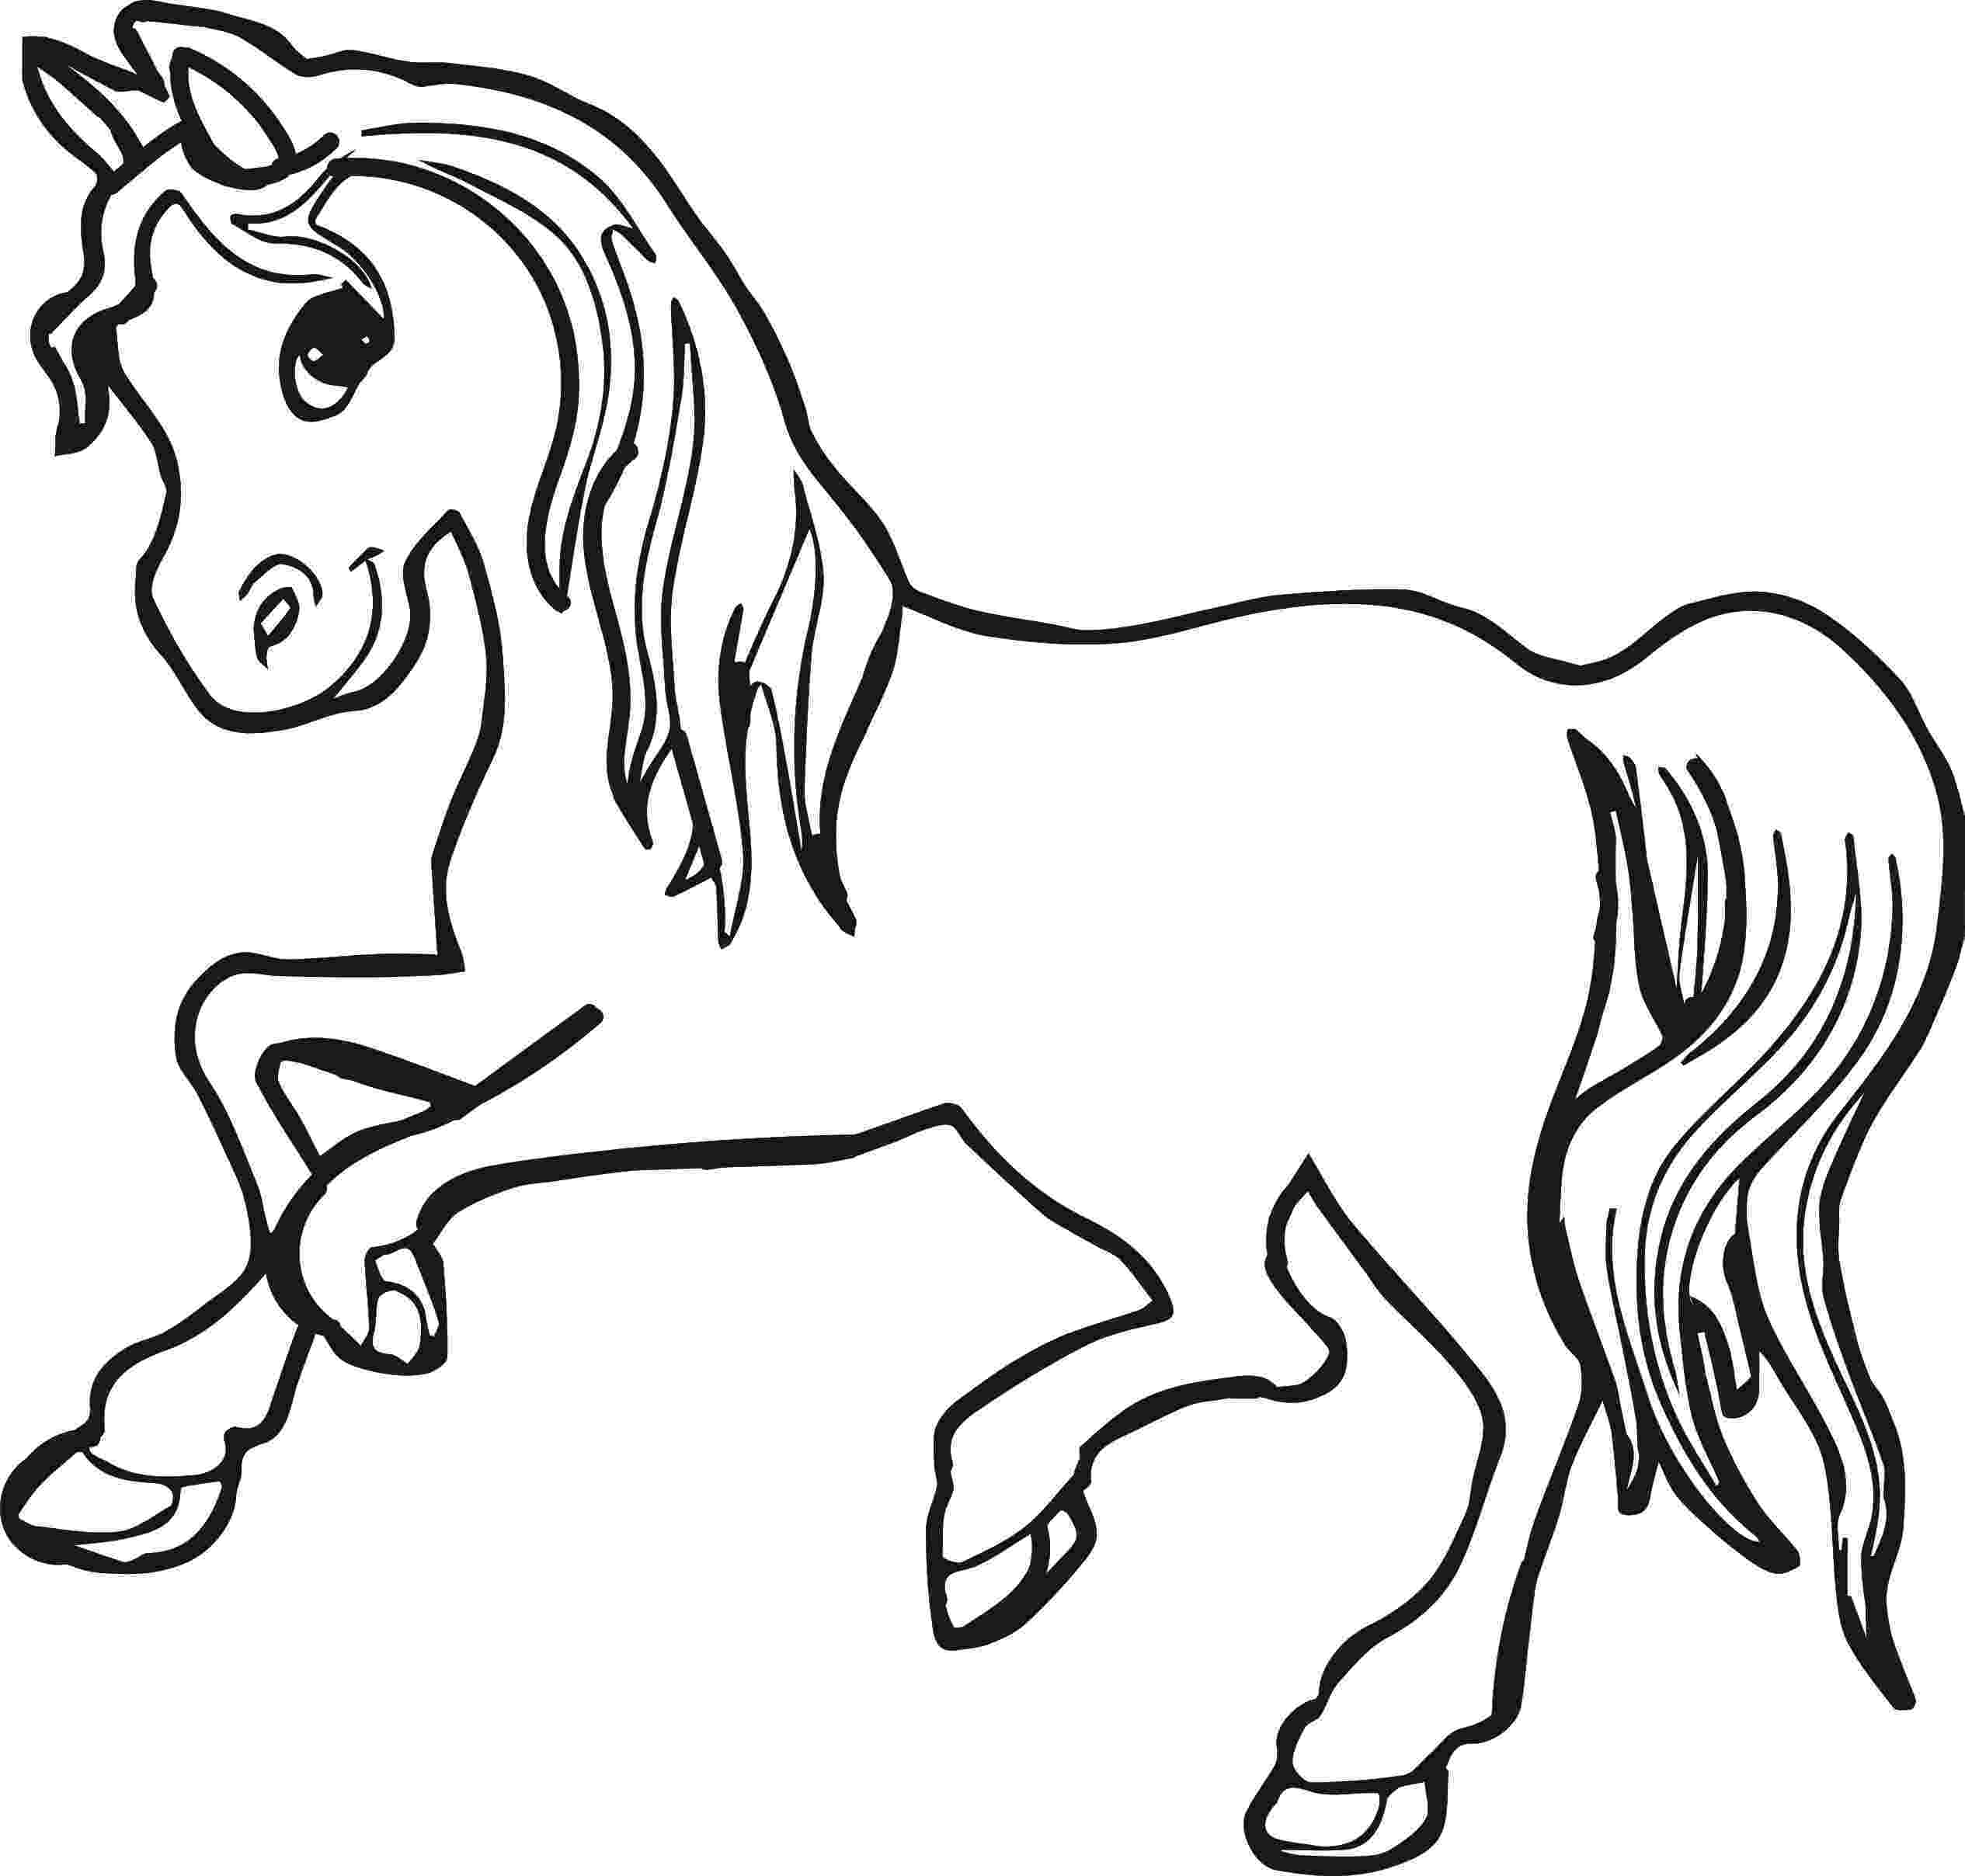 free coloring pages of horses coloring pages for kids horse coloring pages free of horses coloring pages